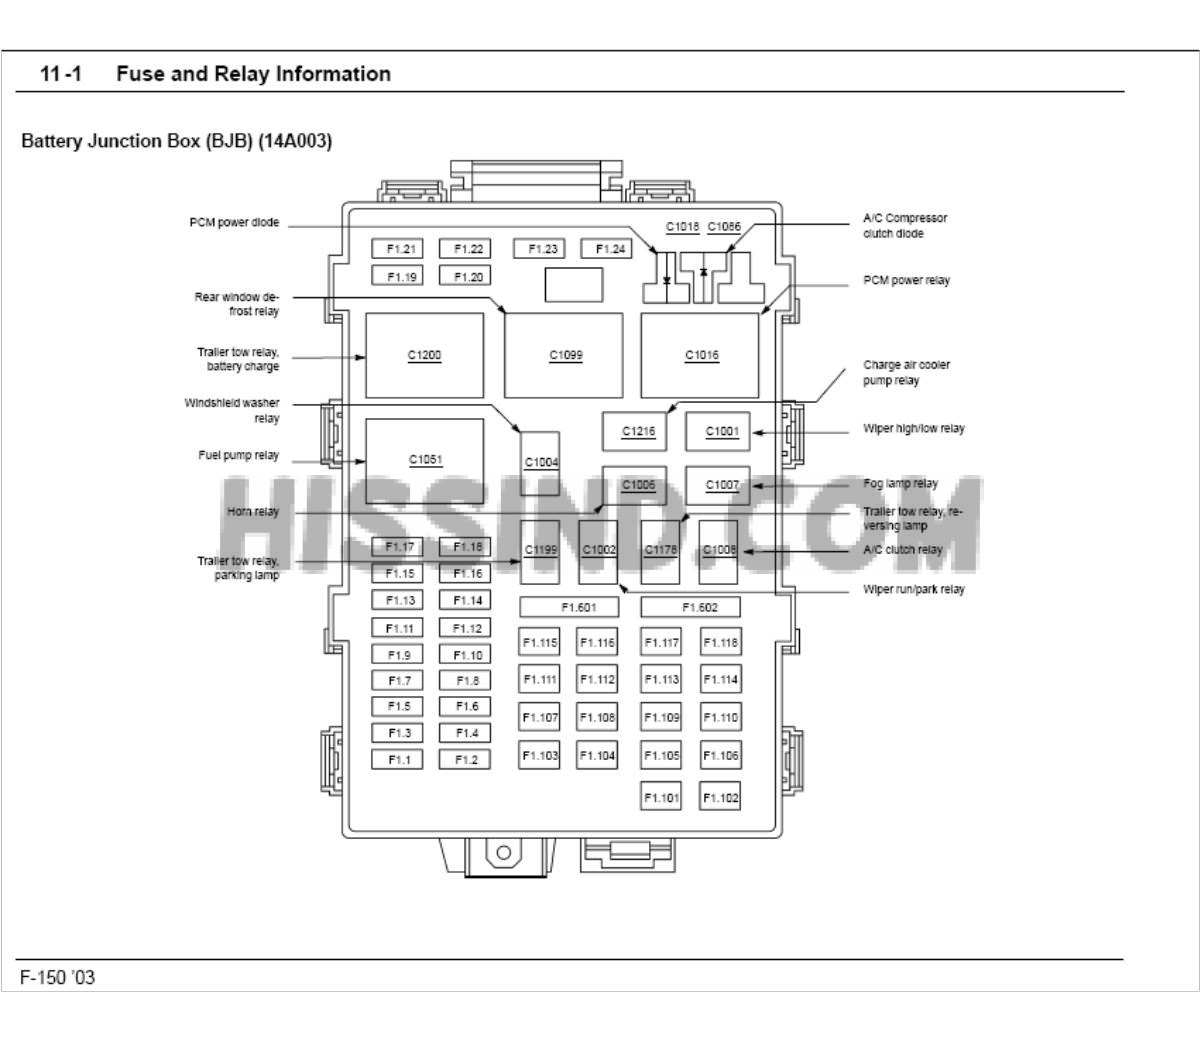 2003 Ford F150 Fuse Box Diagram • Wiring Diagram For Free